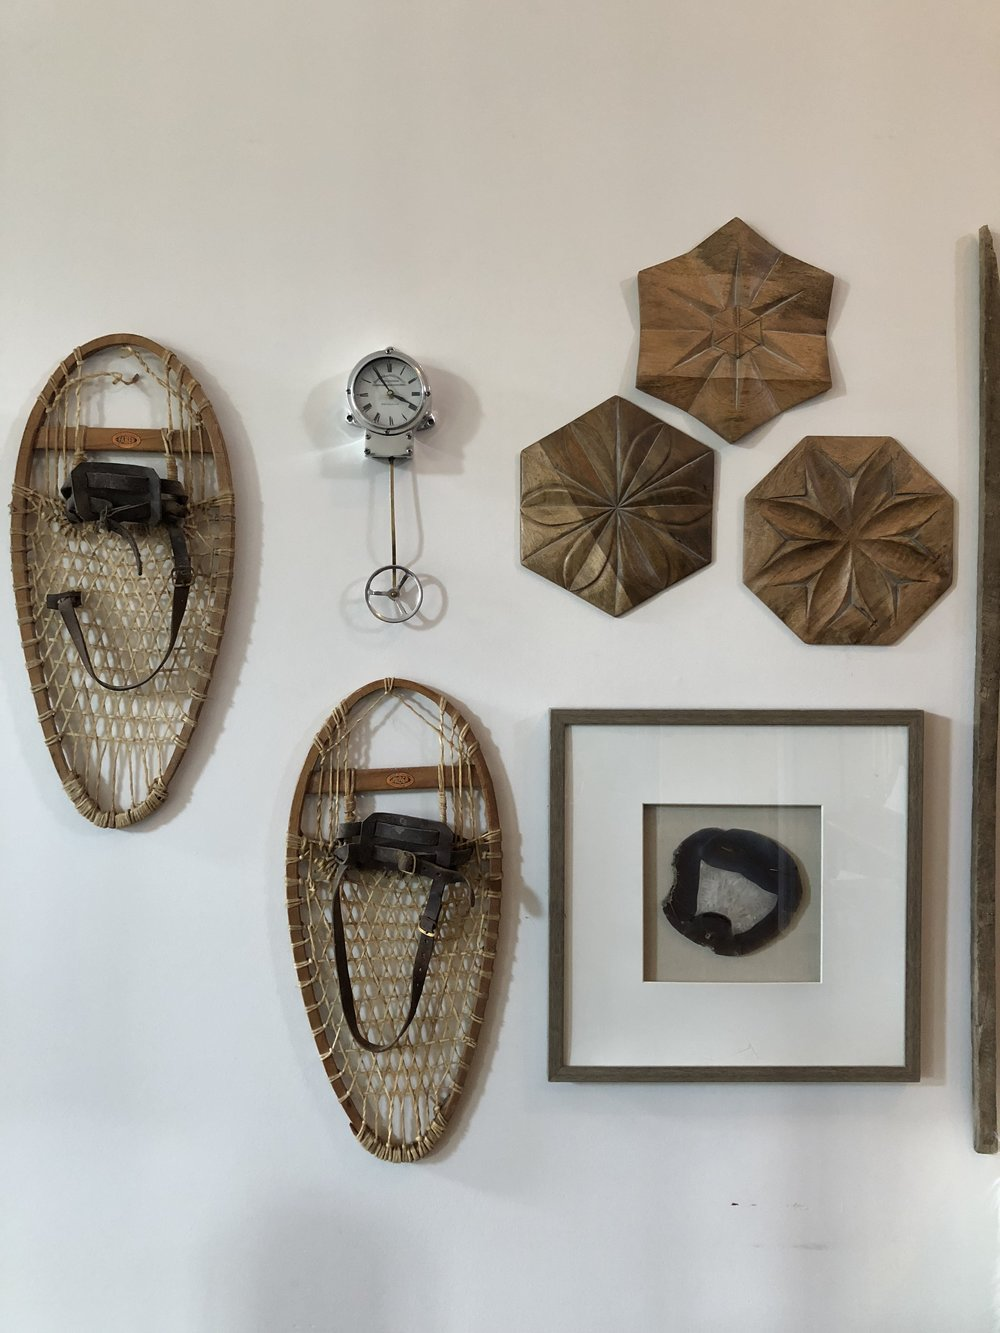 We got these old snow shoes from my in laws house. Totally unexpected but totally fit with the overall color scheme and earthy feel of the gallery!